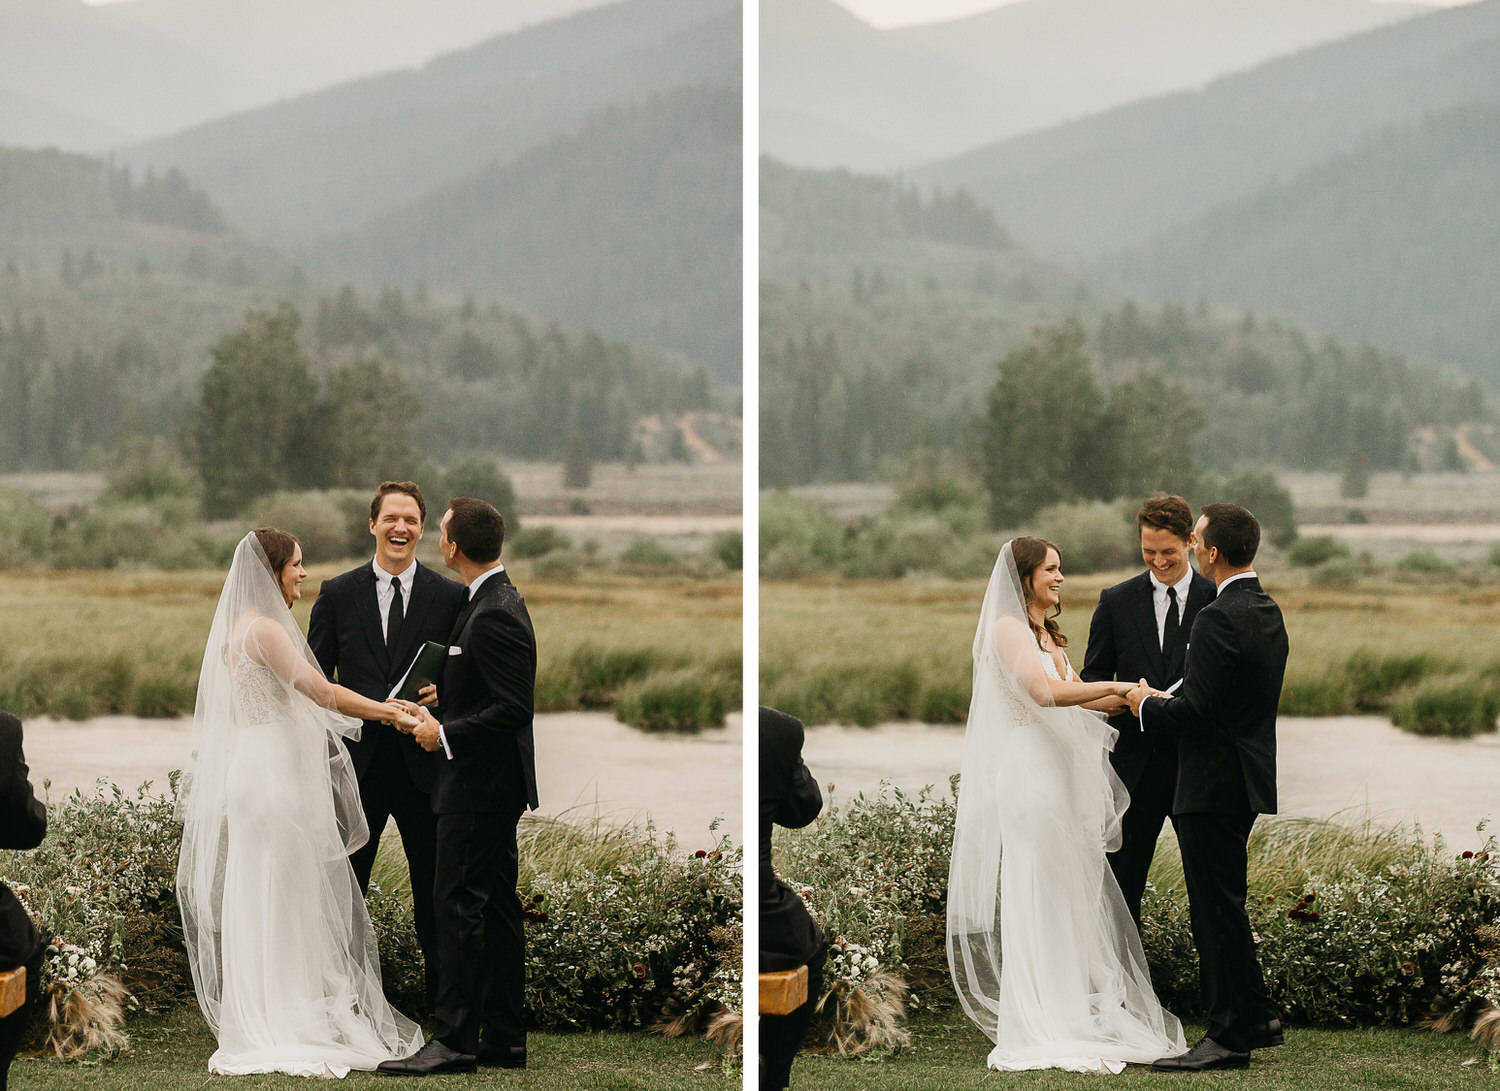 Camp Hale Wedding Colorado Wedding Photographer 17.jpg